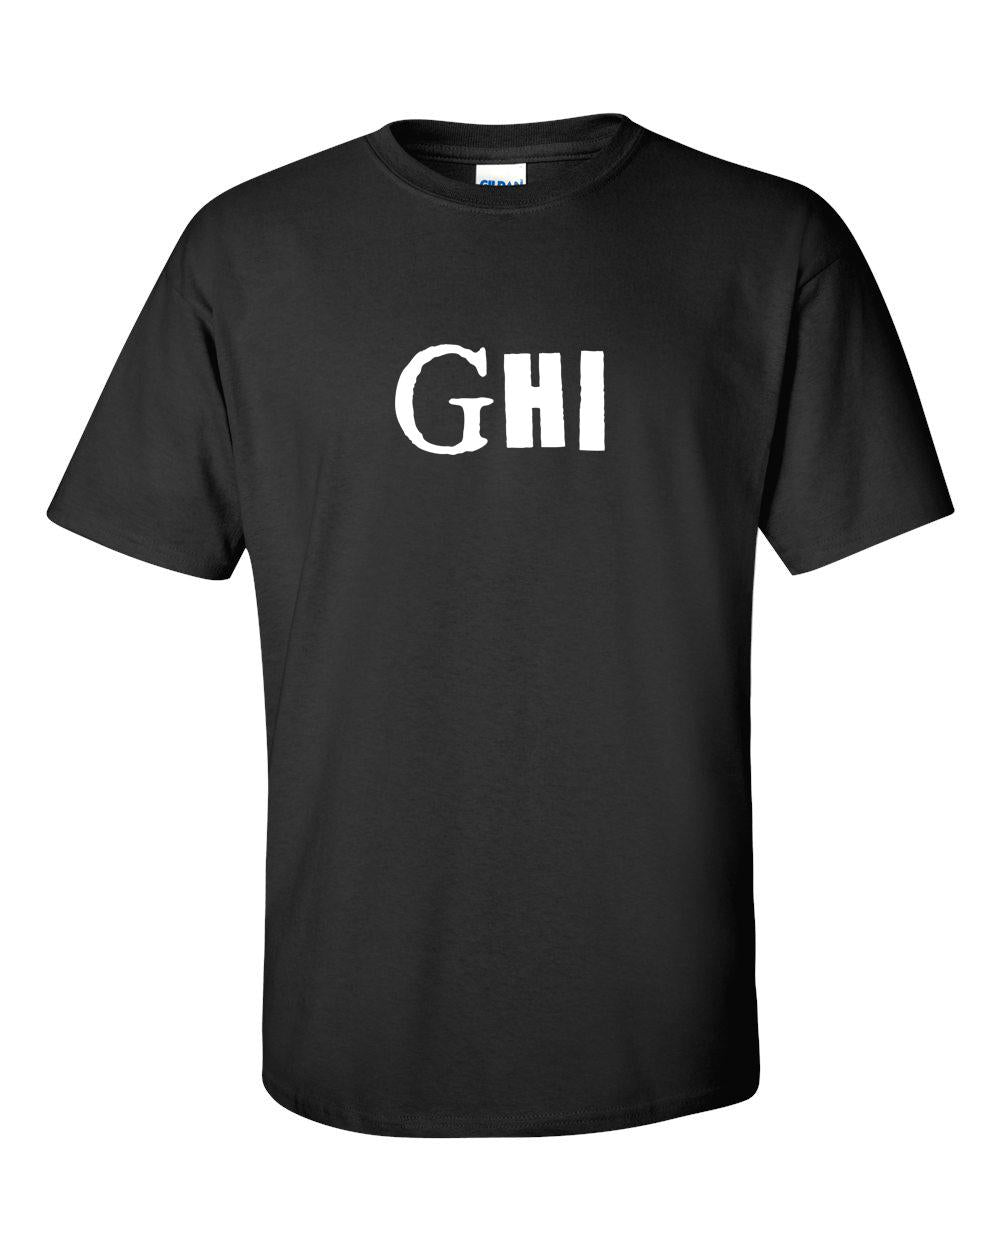 GHI T-Shirt Black - White Print